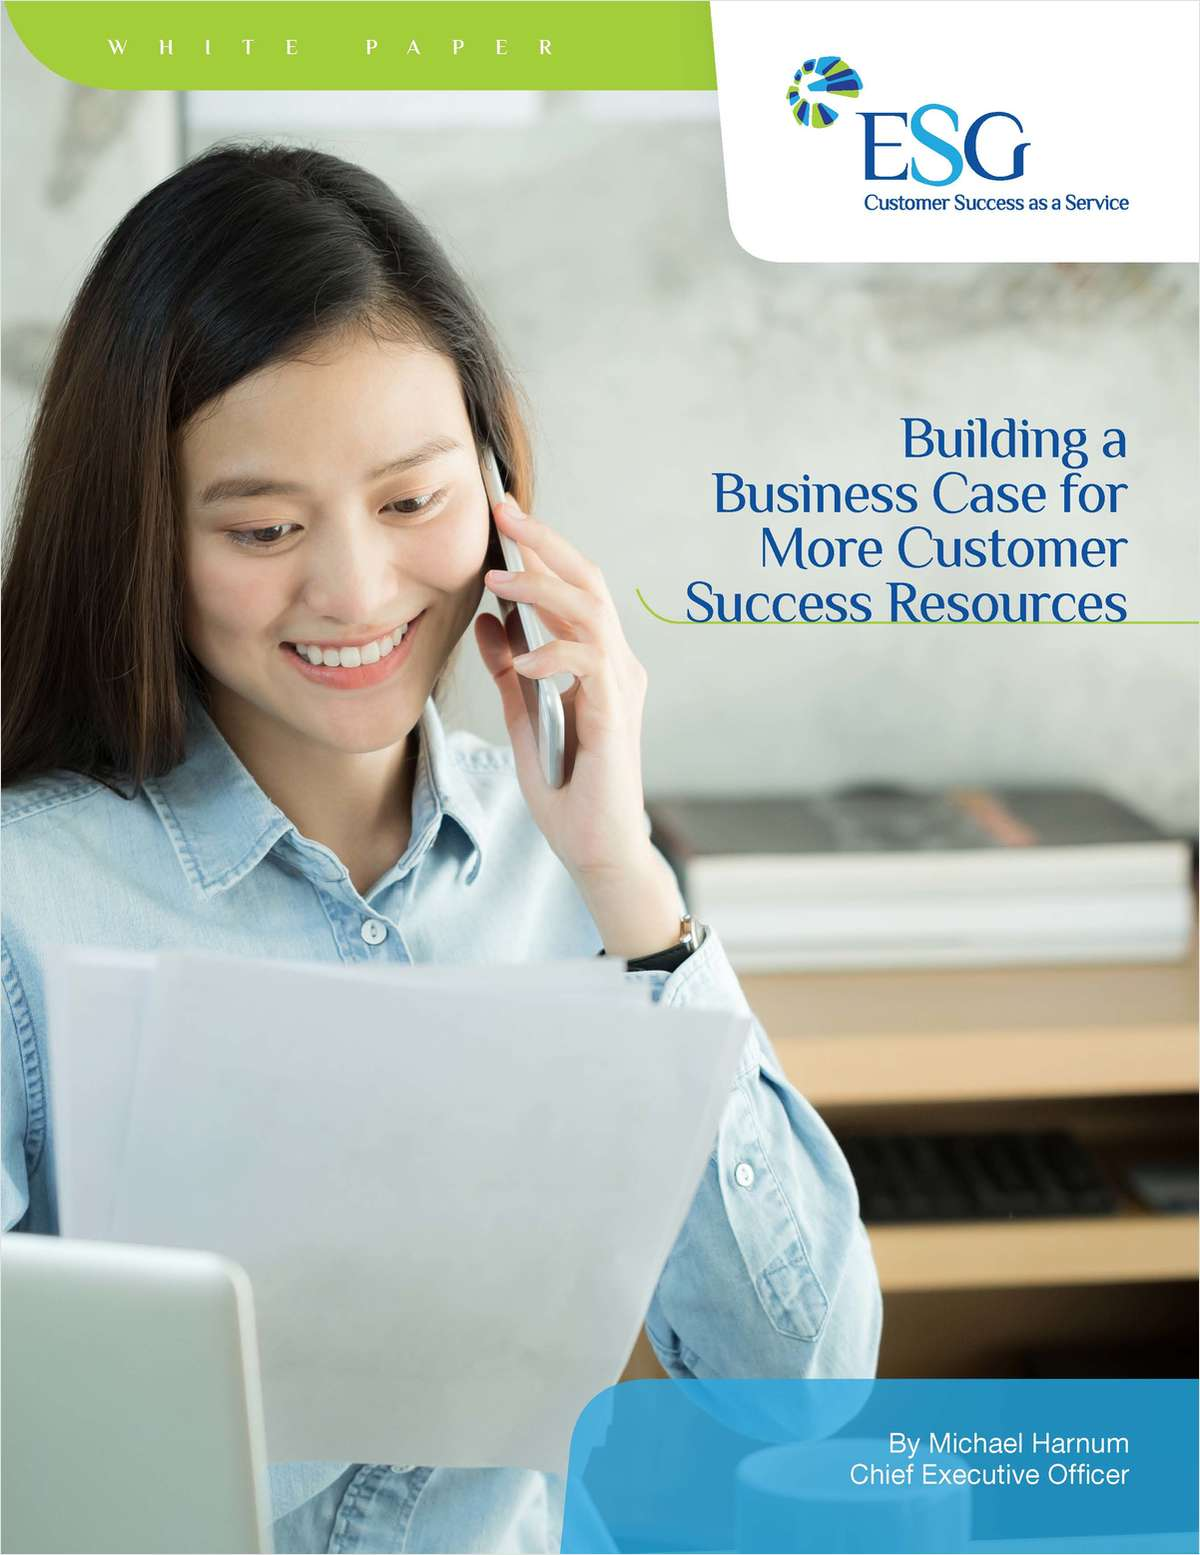 Building a Business Case for More Customer Success Resources